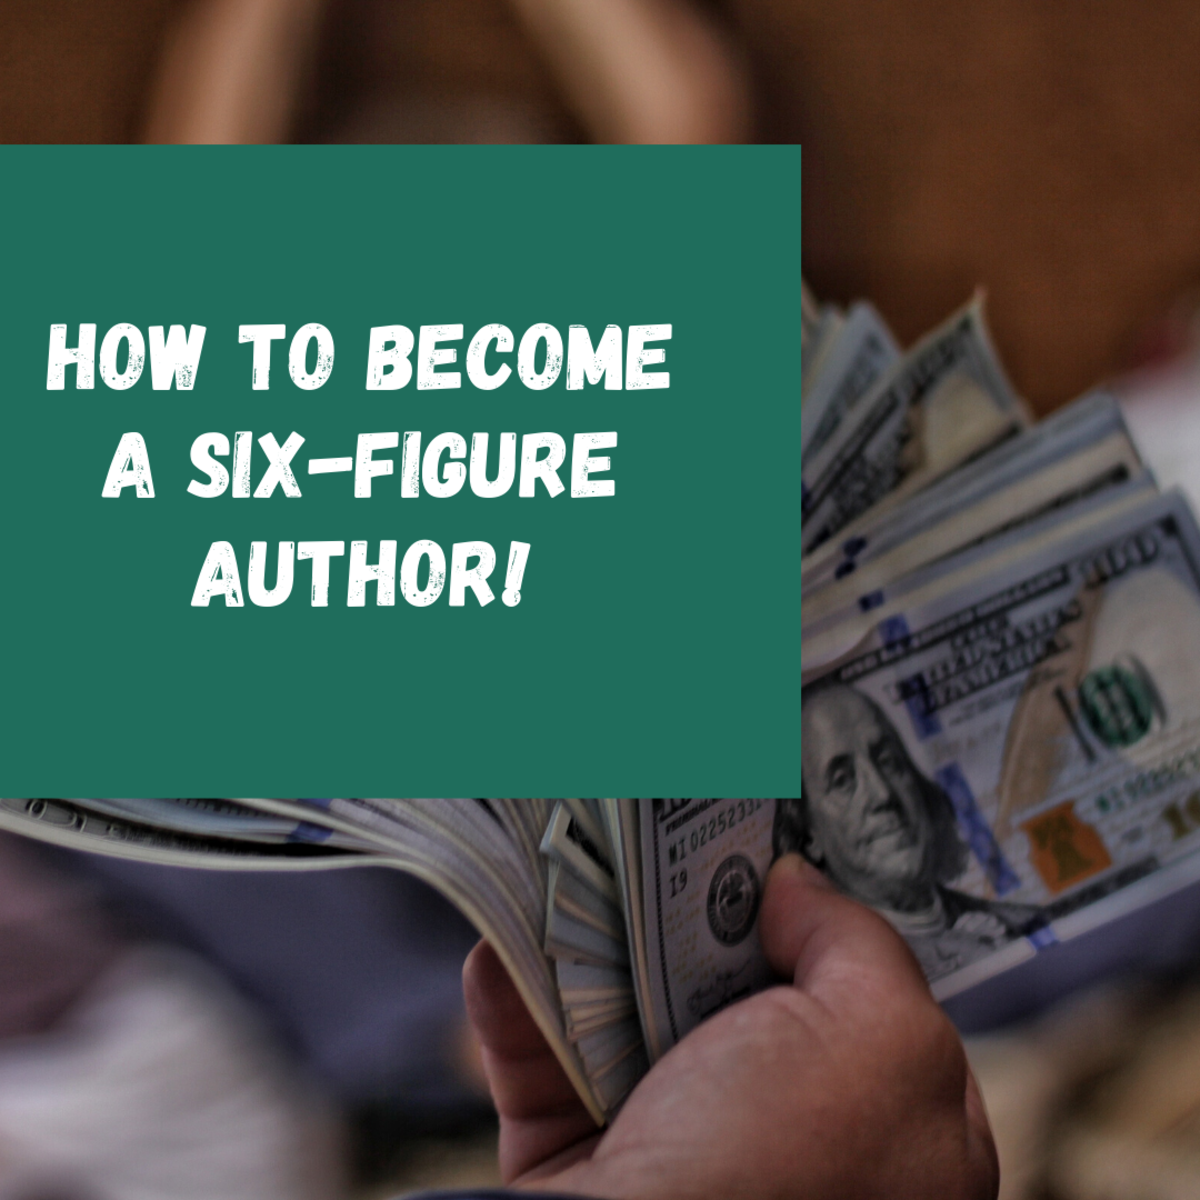 Follow these steps to make your dream of becoming a successful self-published author a reality.